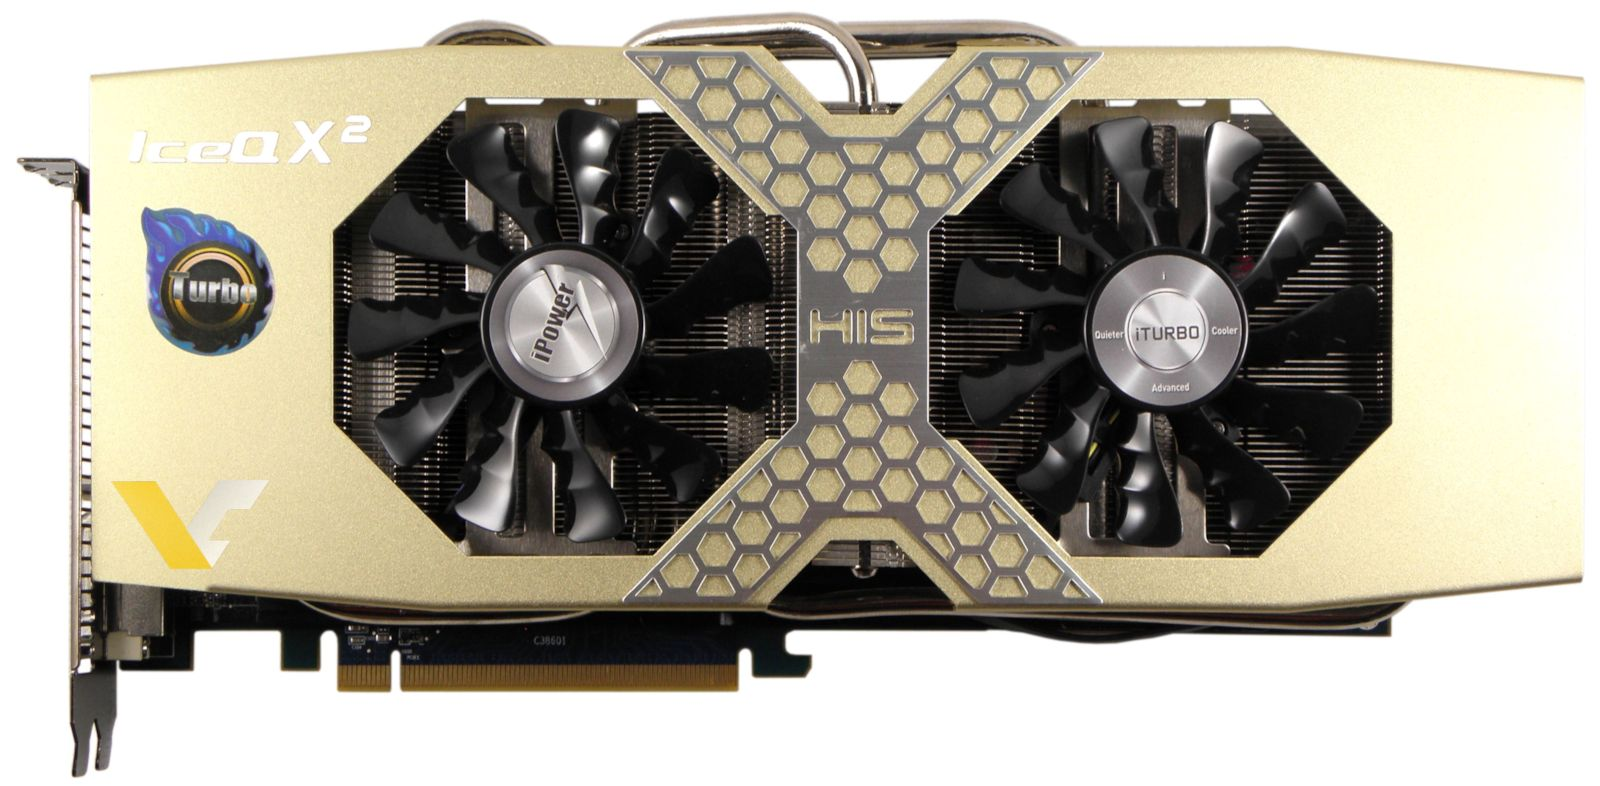 HIS Radeon R9 280, 285, 280X, 290X IceQ X2 - Overview @@ HIS